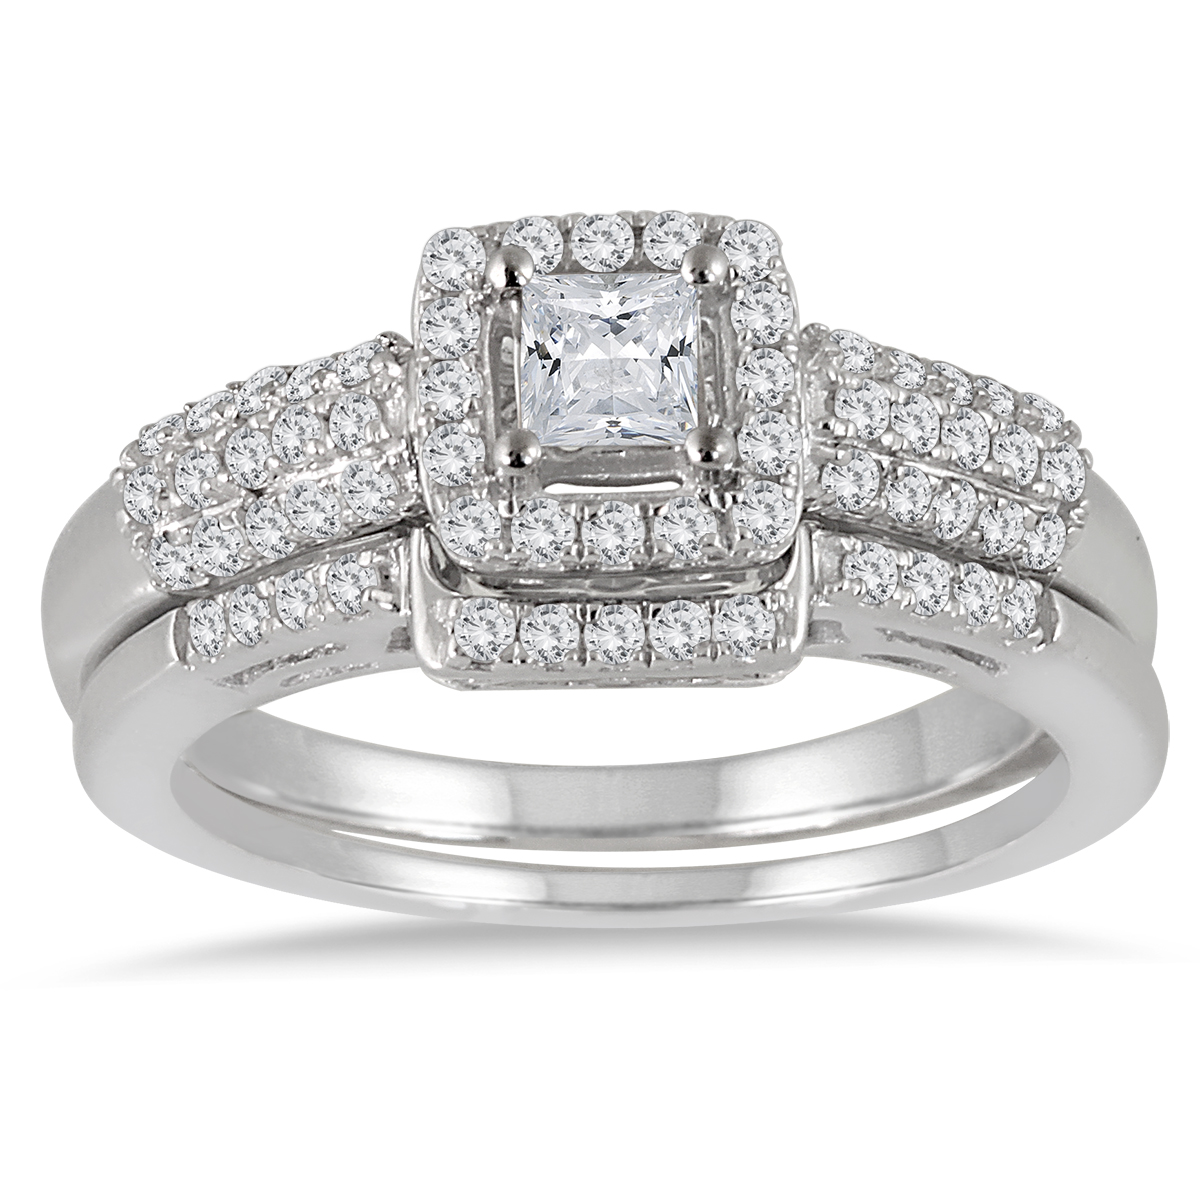 7/8 Carat TW Princess Diamond Halo Bridal